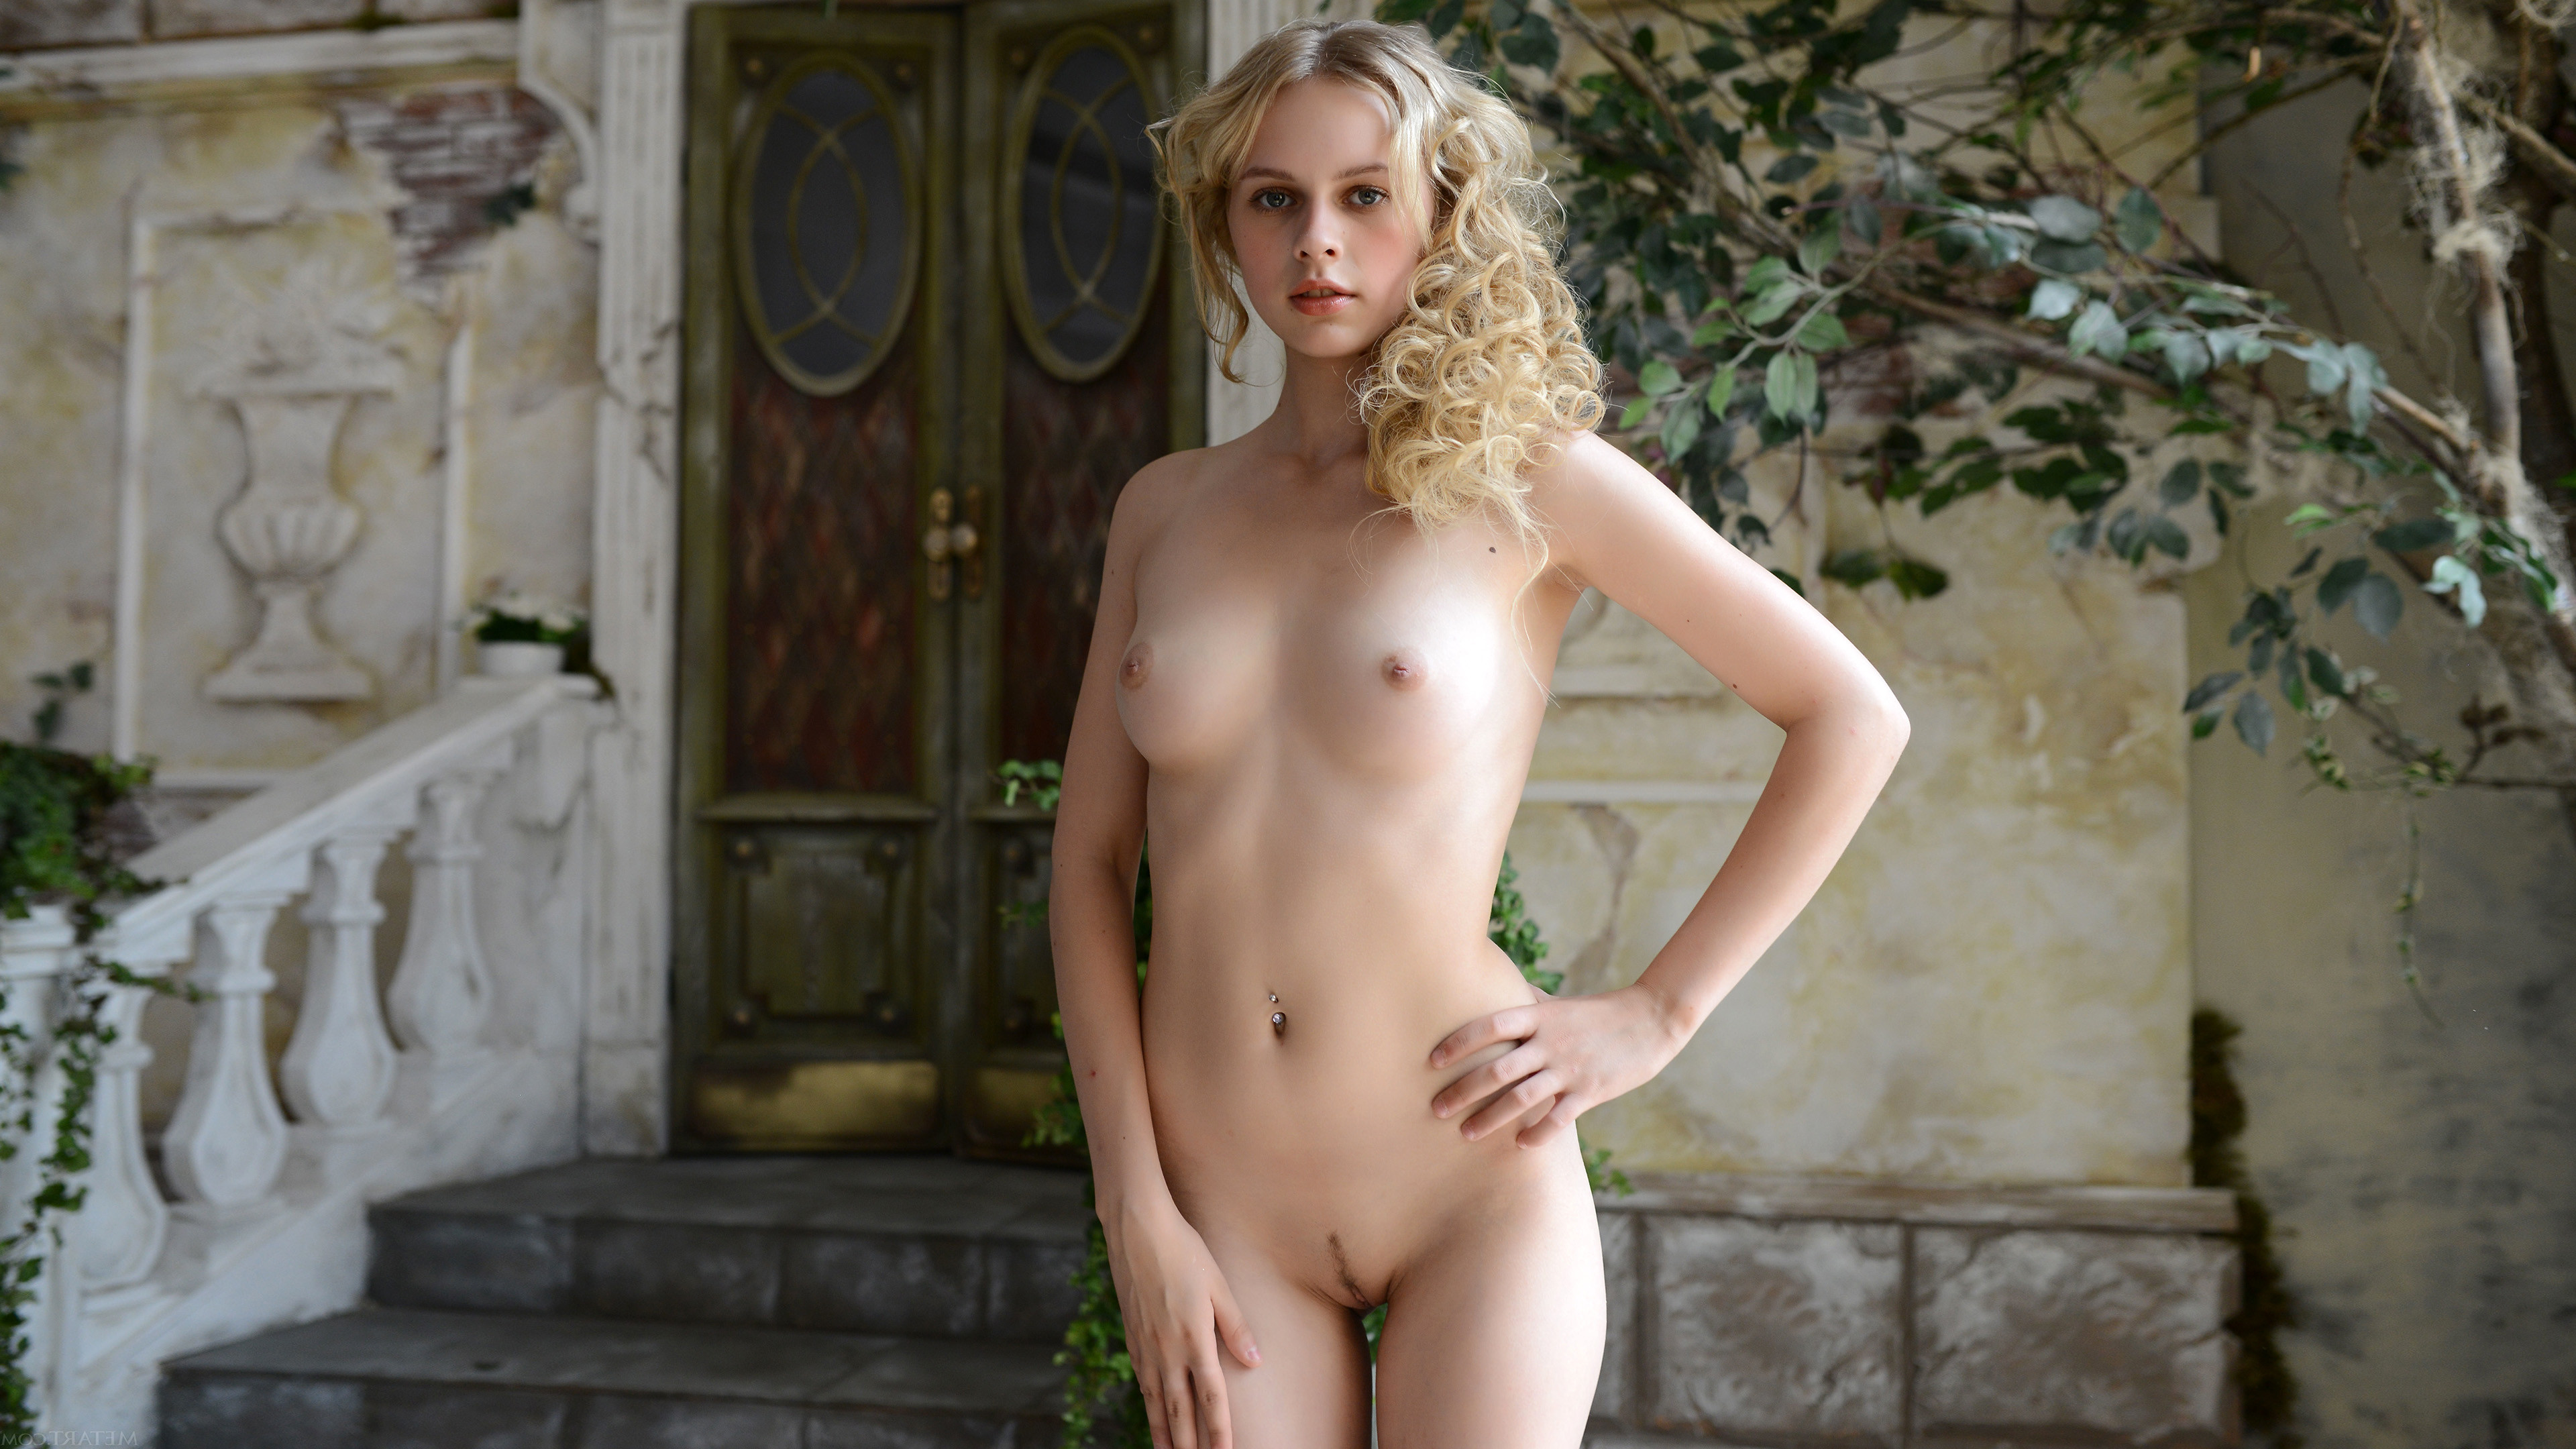 Free galleries of sexy models